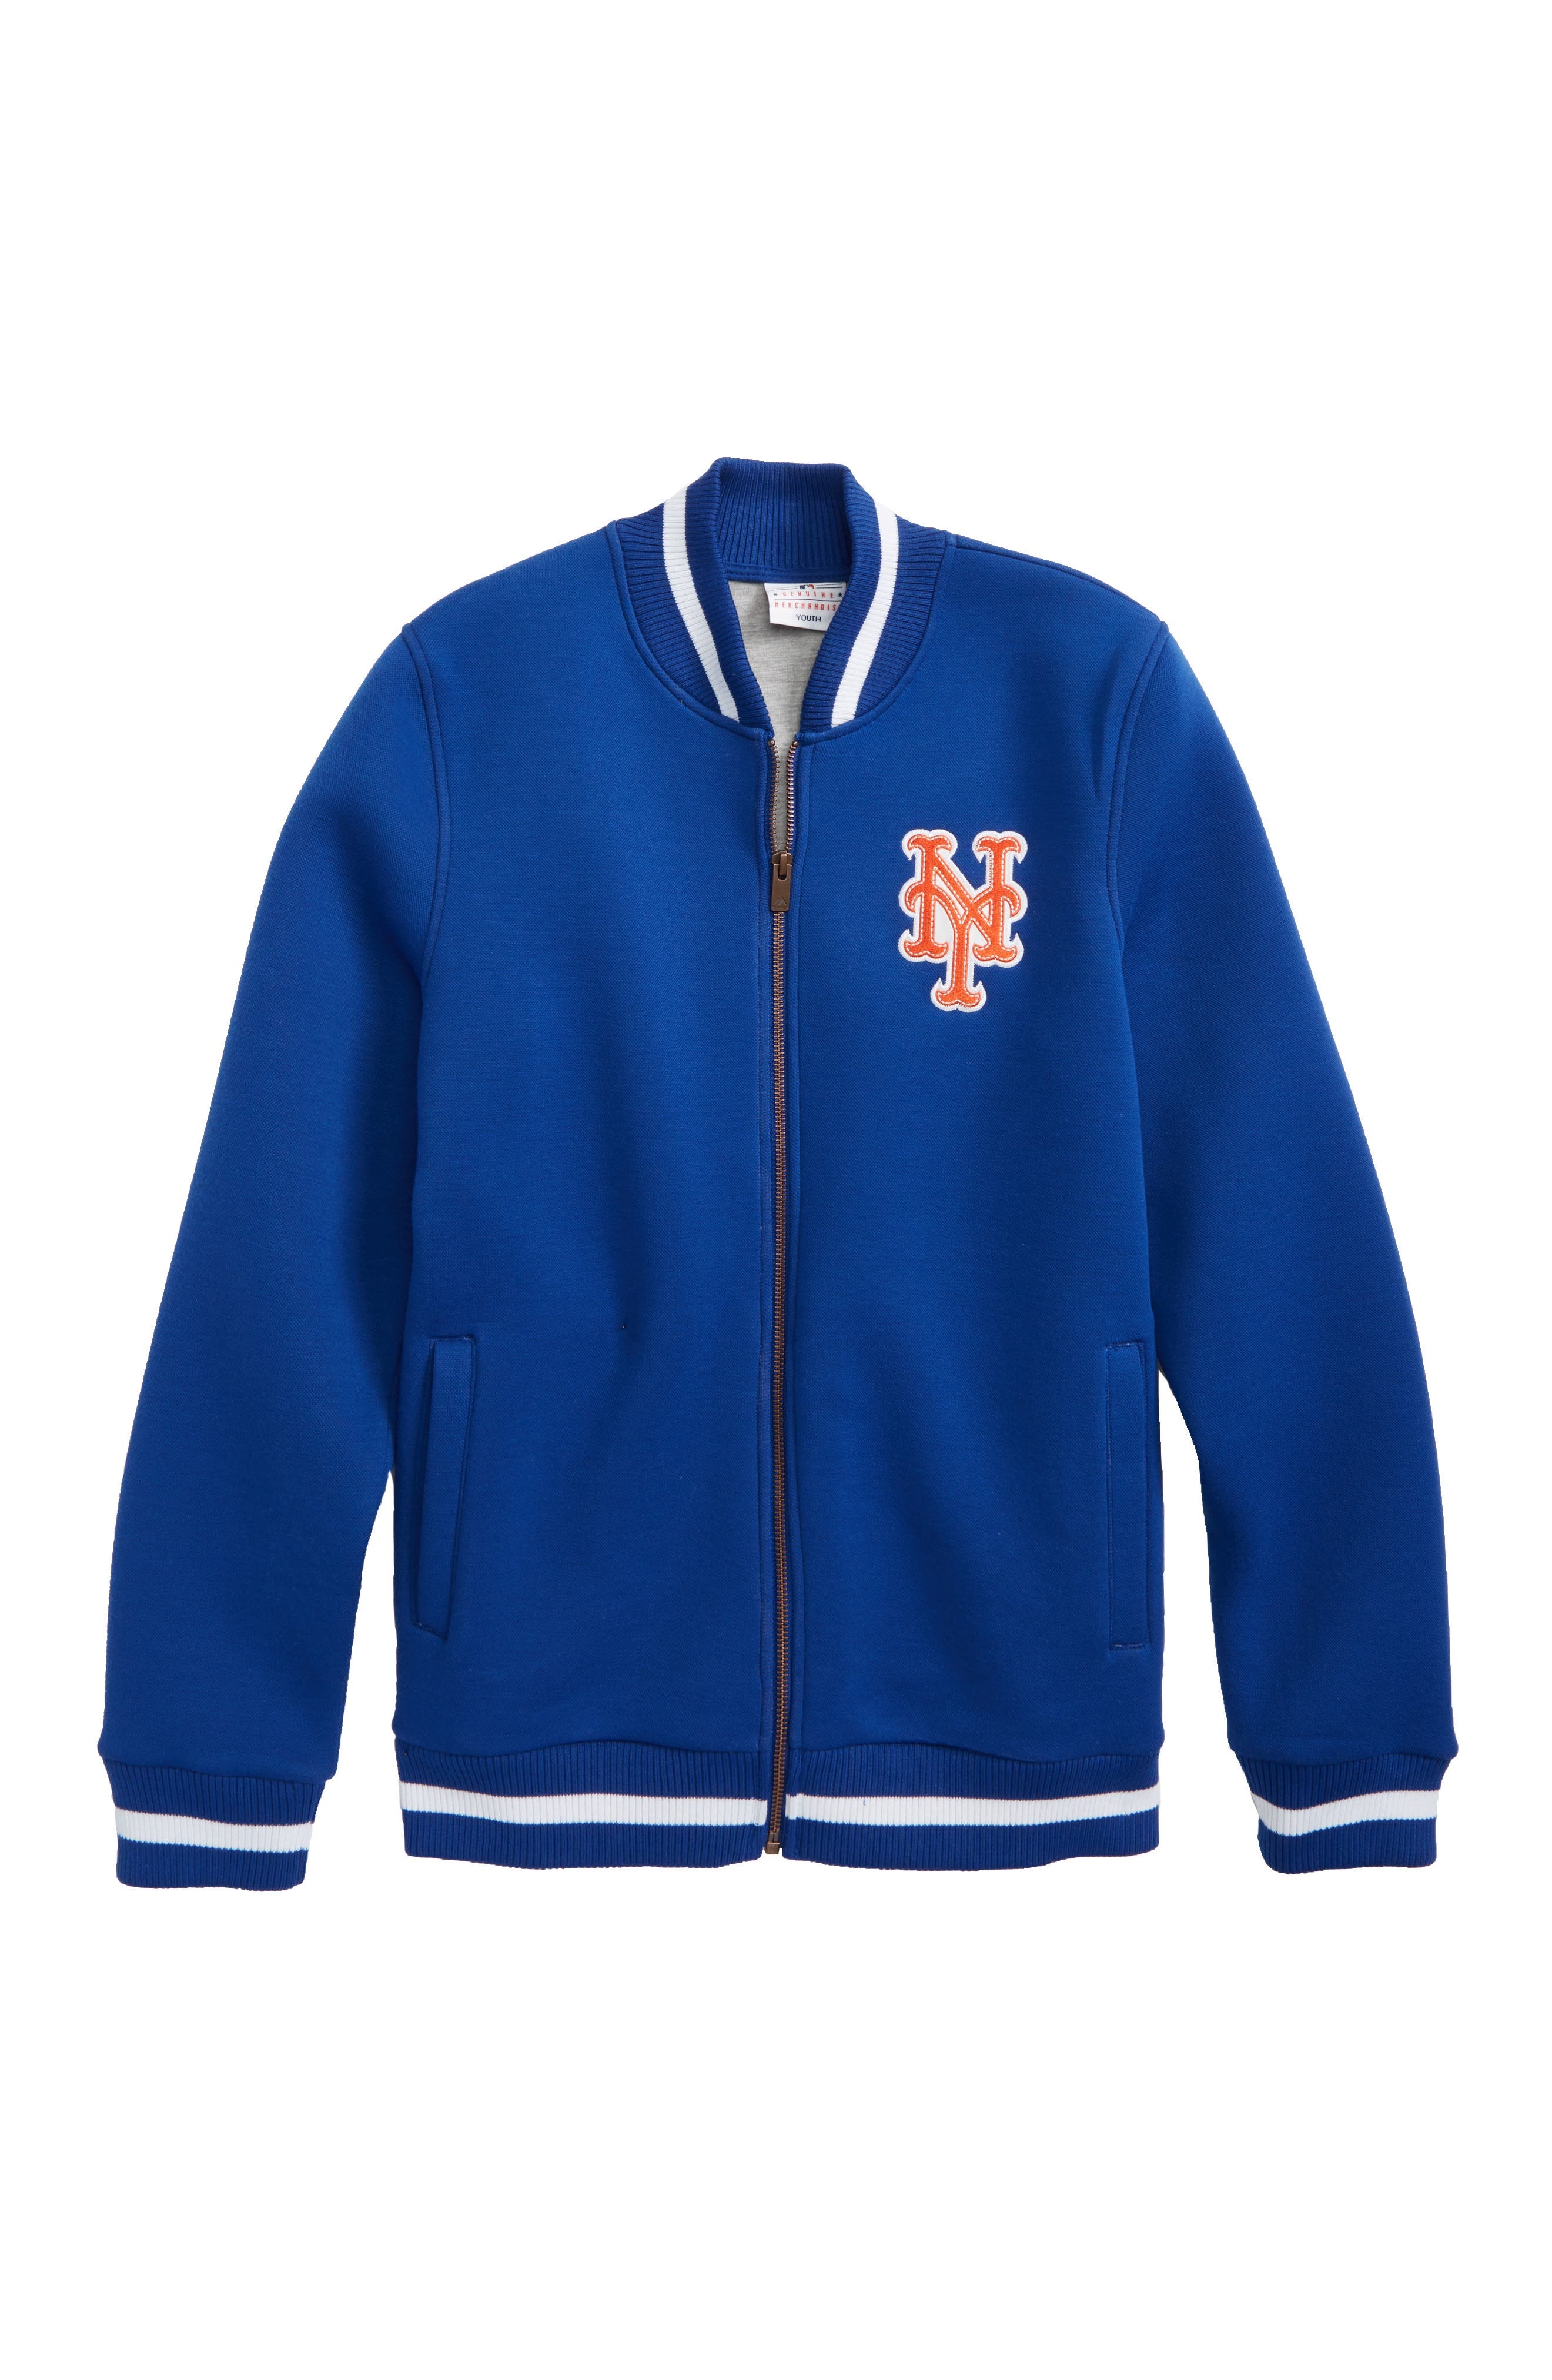 Main Image - Majestic MLB Classical New York Mets Knit Varsity Jacket